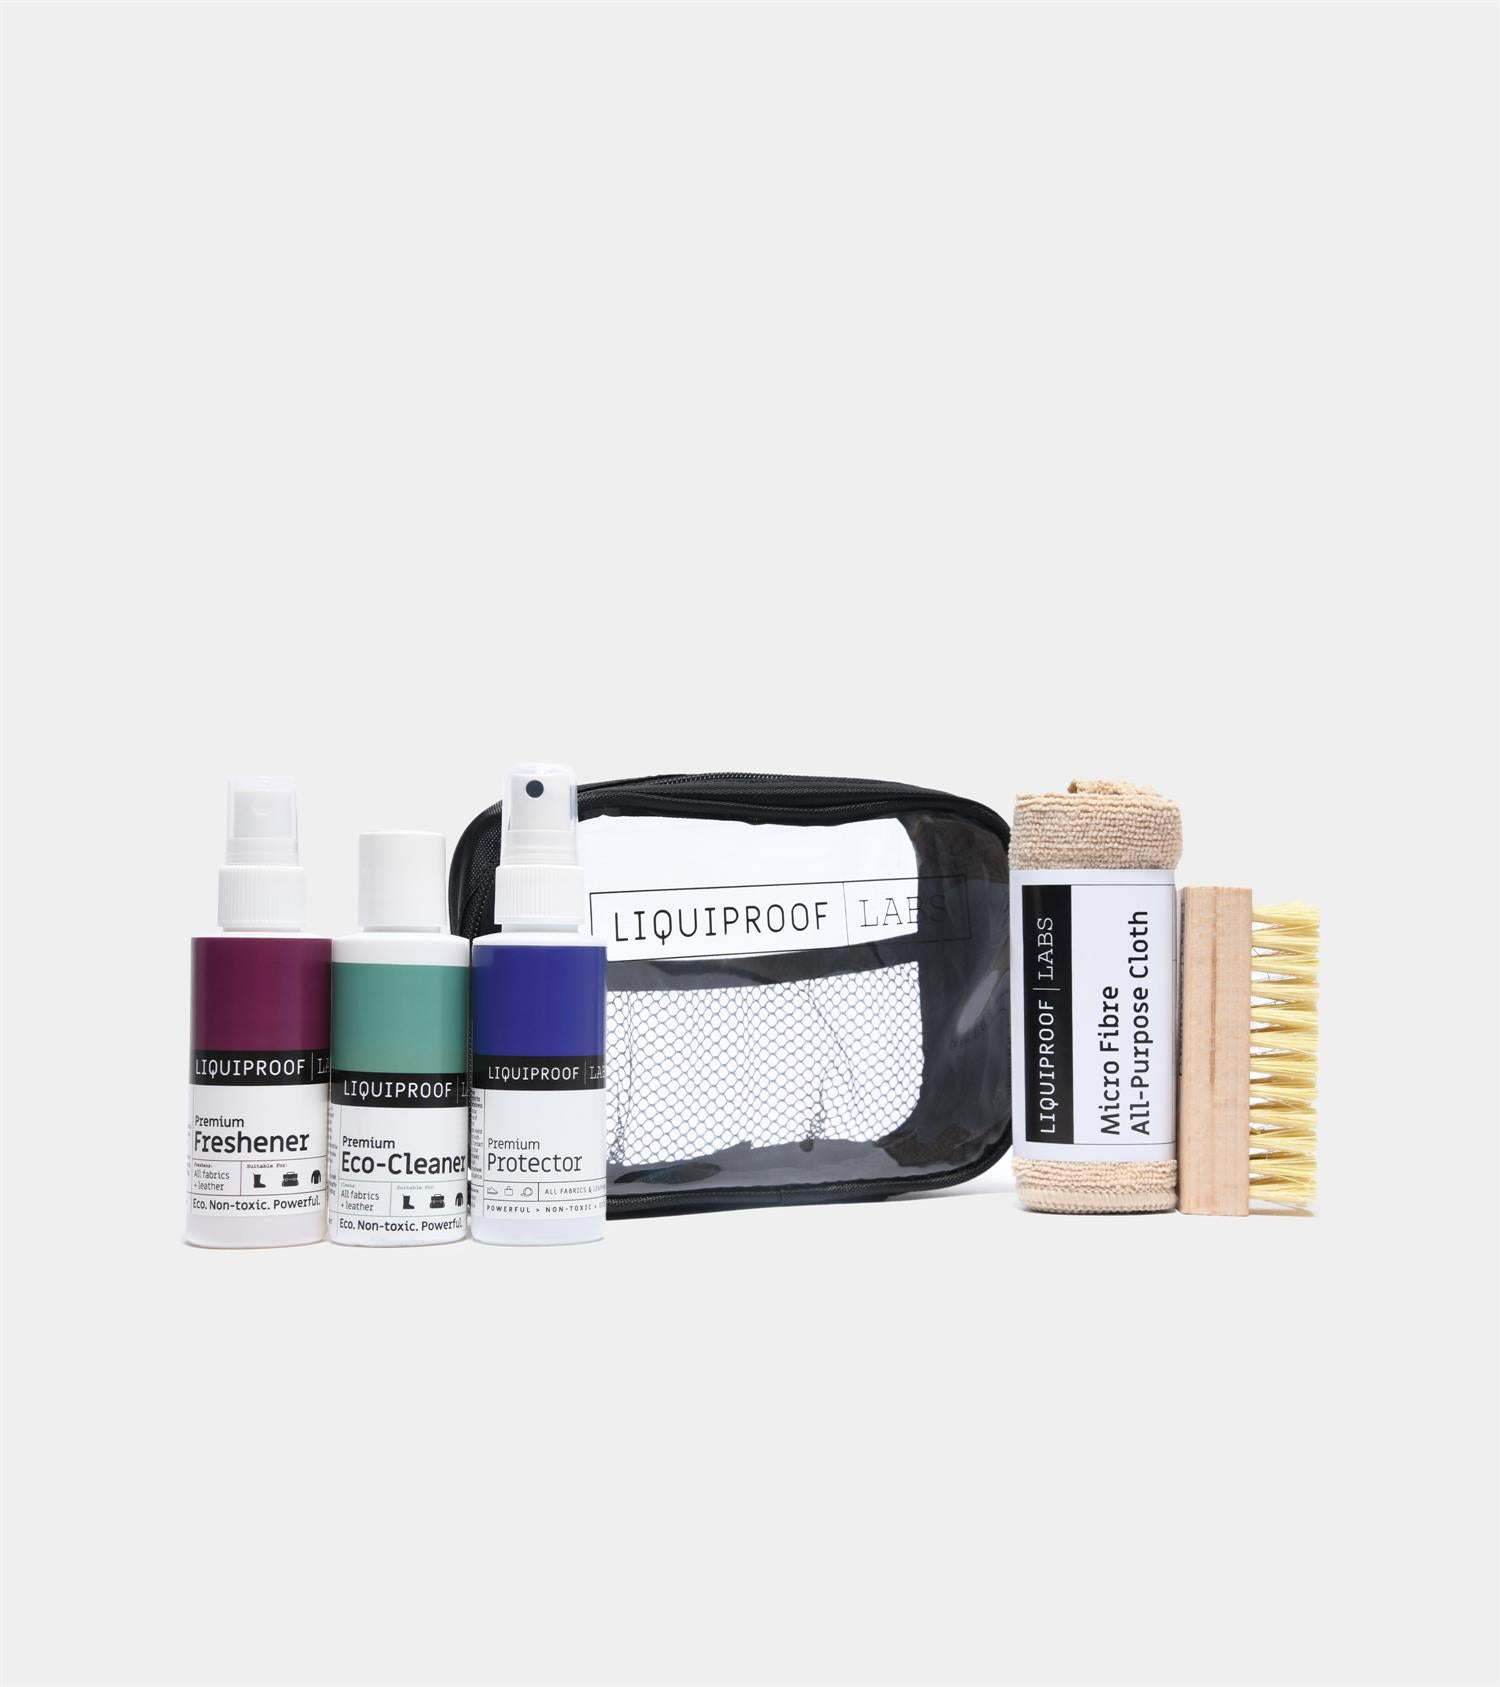 Footwear & Fashion Care Travel Kit